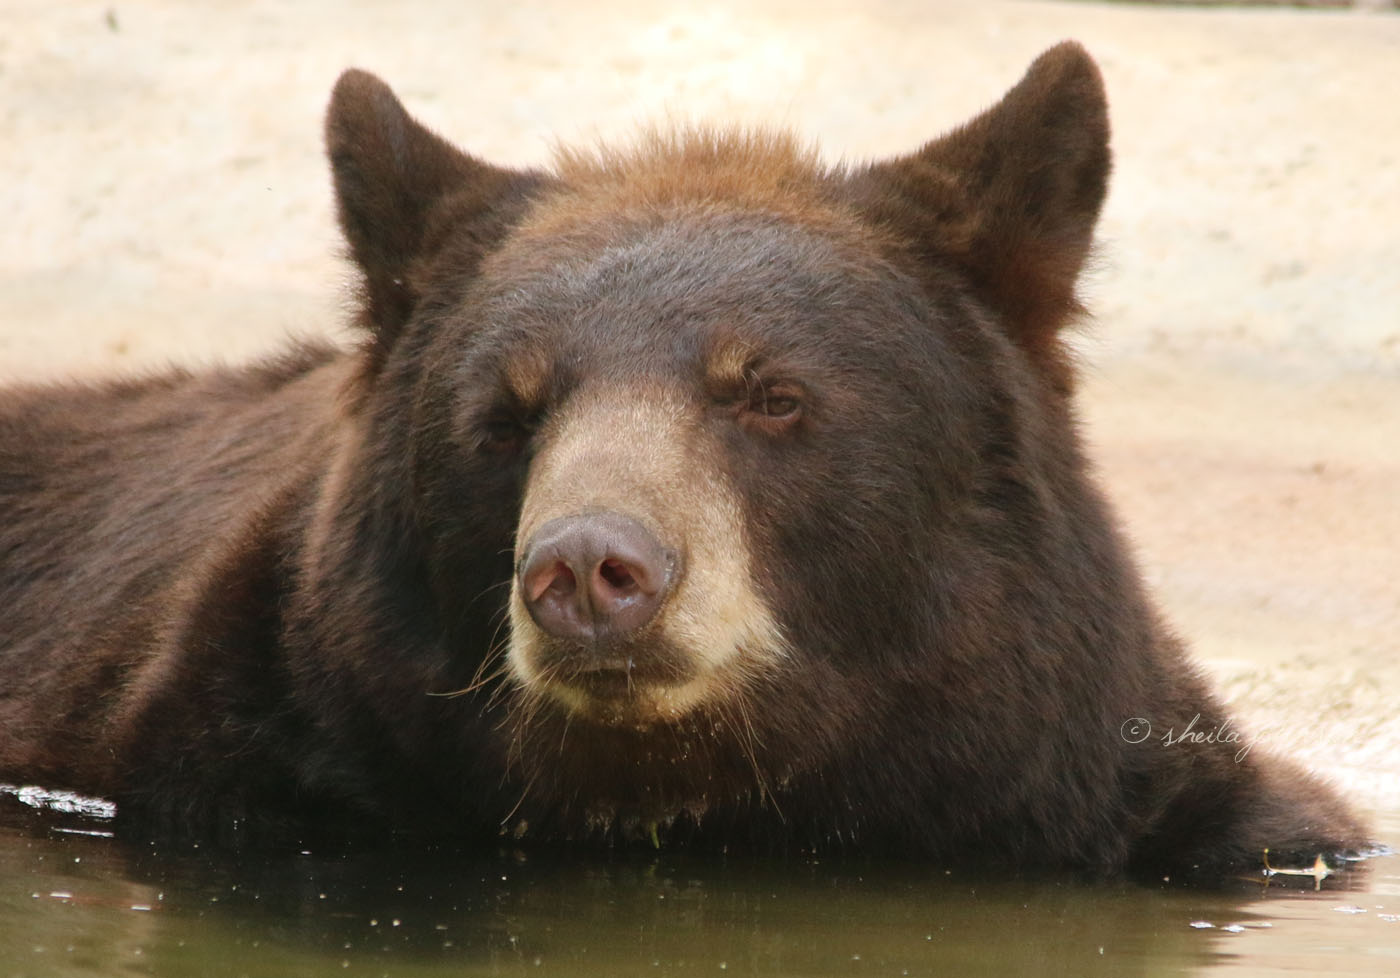 Despite Their Name, The North American Black Bear Is Not Always Black. This One Lives At Zoo Miami, And I'm Going To Guess His Reddish Highlights Are The Result Of Time Spent In The Florida Sun.